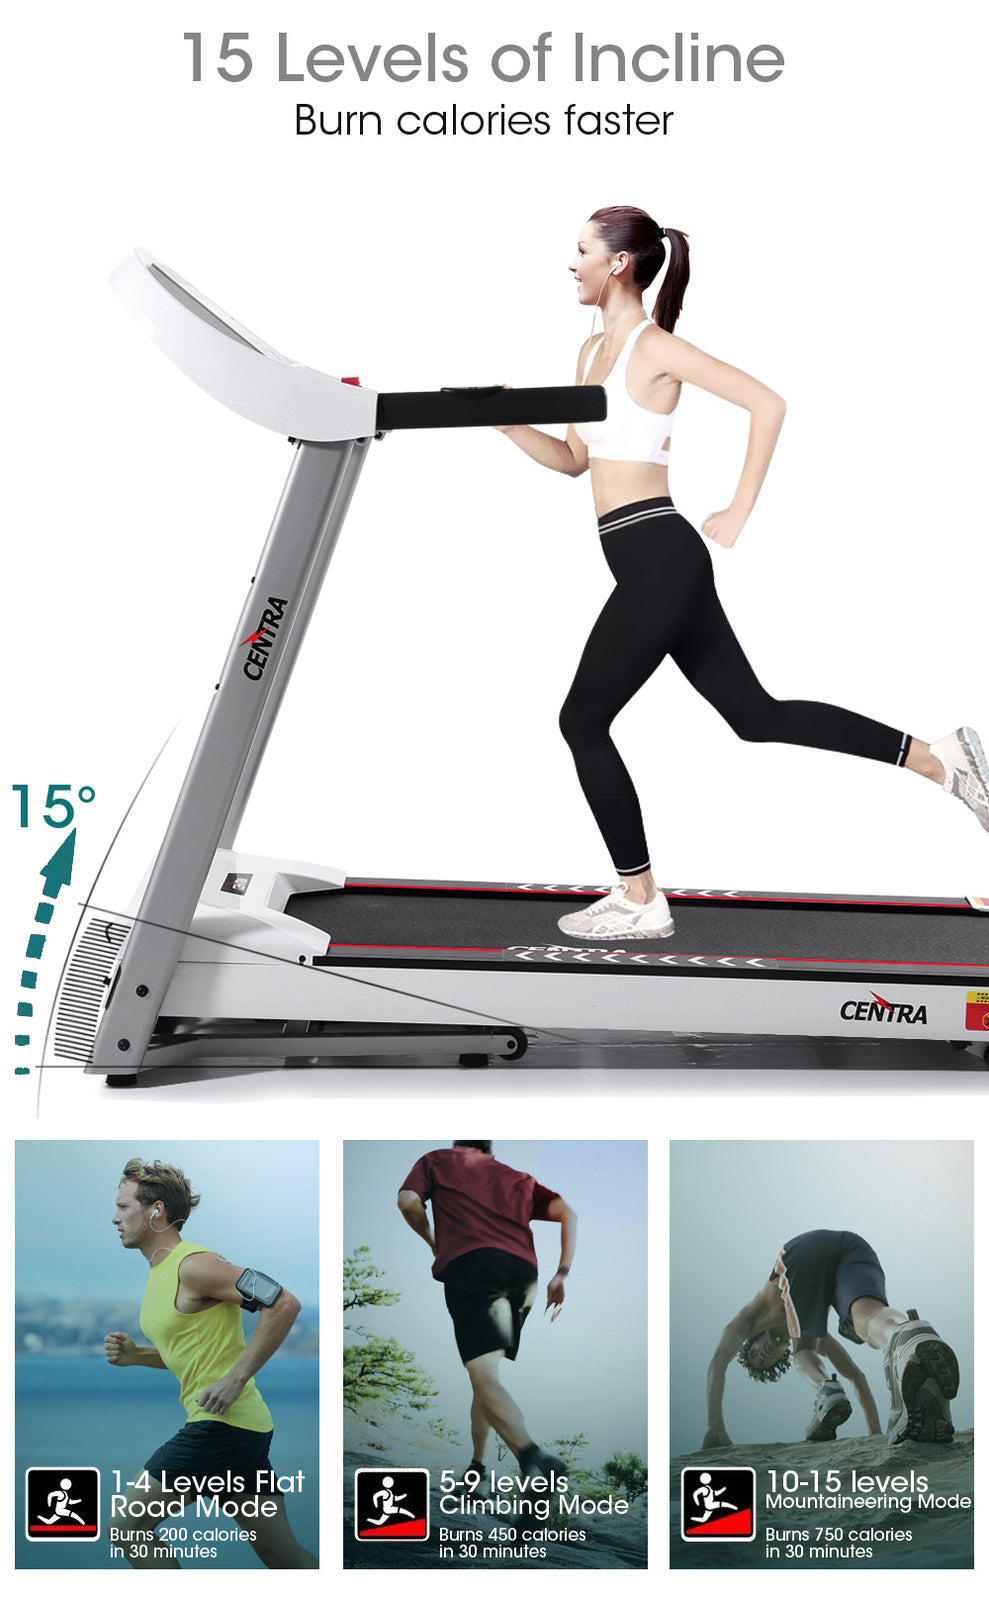 treadmill online-on sale treadmill melbourne sydney perth brisbane adelaide NSW -New South Wales canberra-online cheap treadmill store melbourne  buy cheap tradmaleon discount